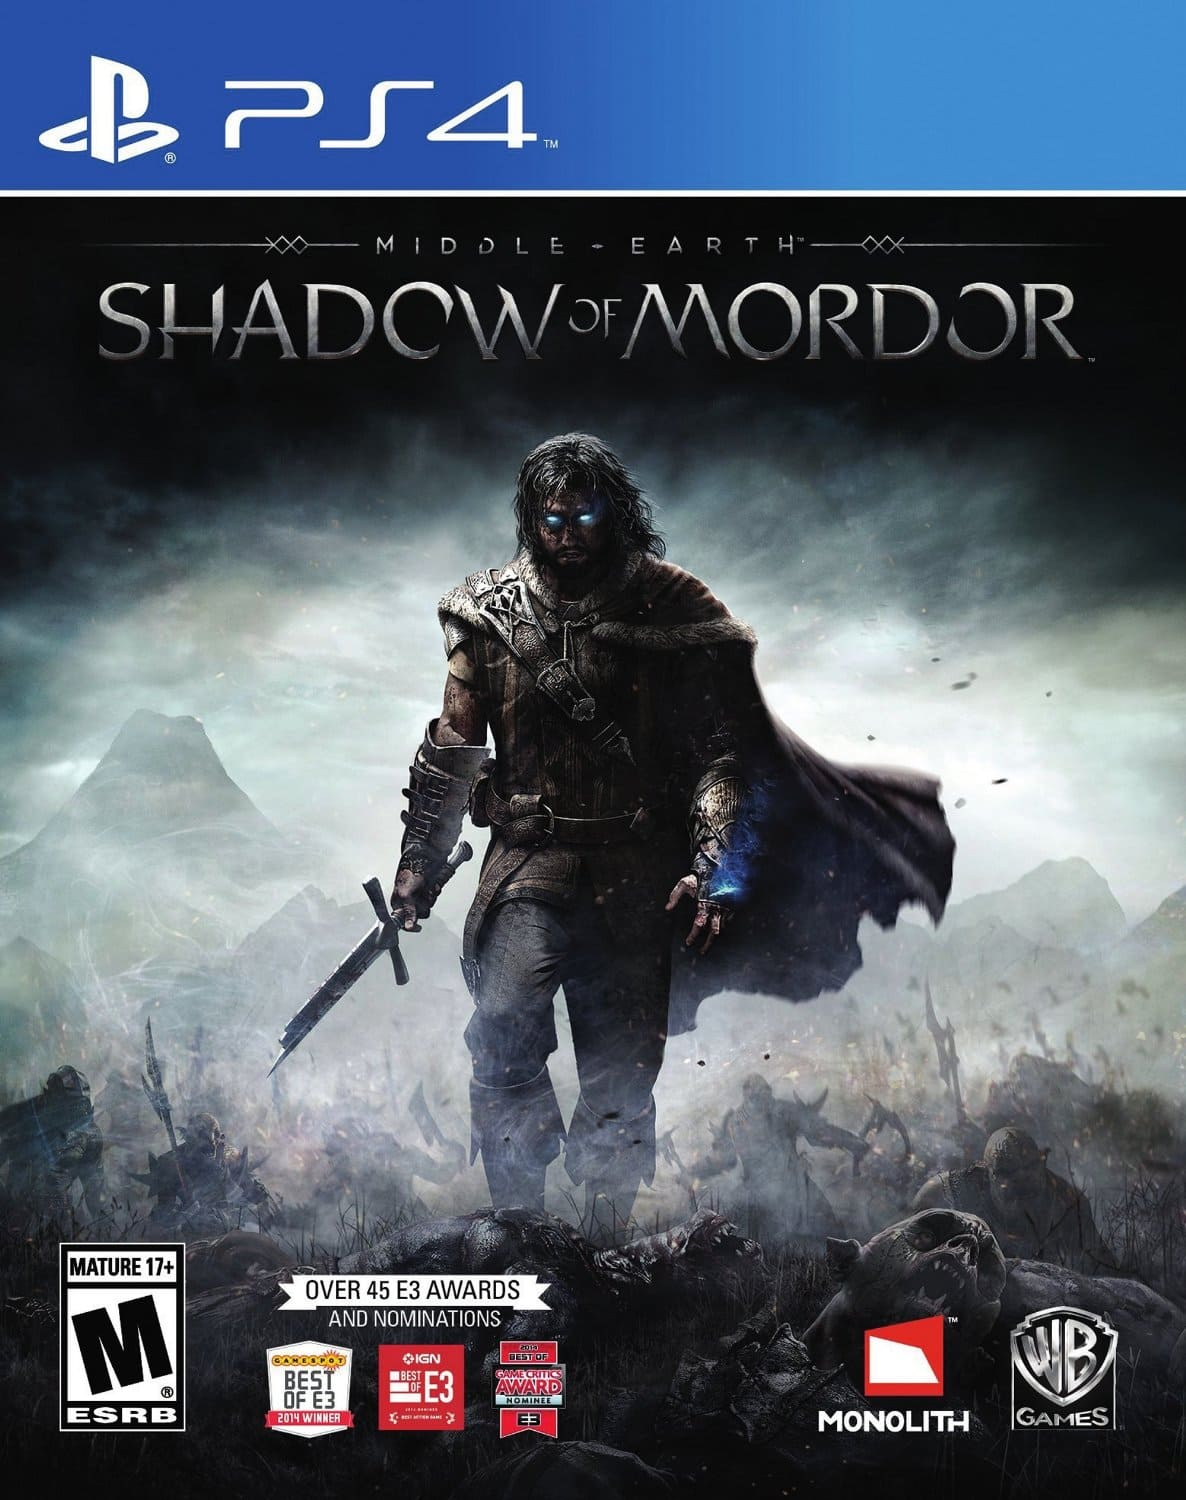 Middle-Earth: Shadow of Mordor (Xbox One, PS4, Xbox 360, PS3, PC) $29.99 or $23.99 for GCU Members @ Best Buy & Amazon